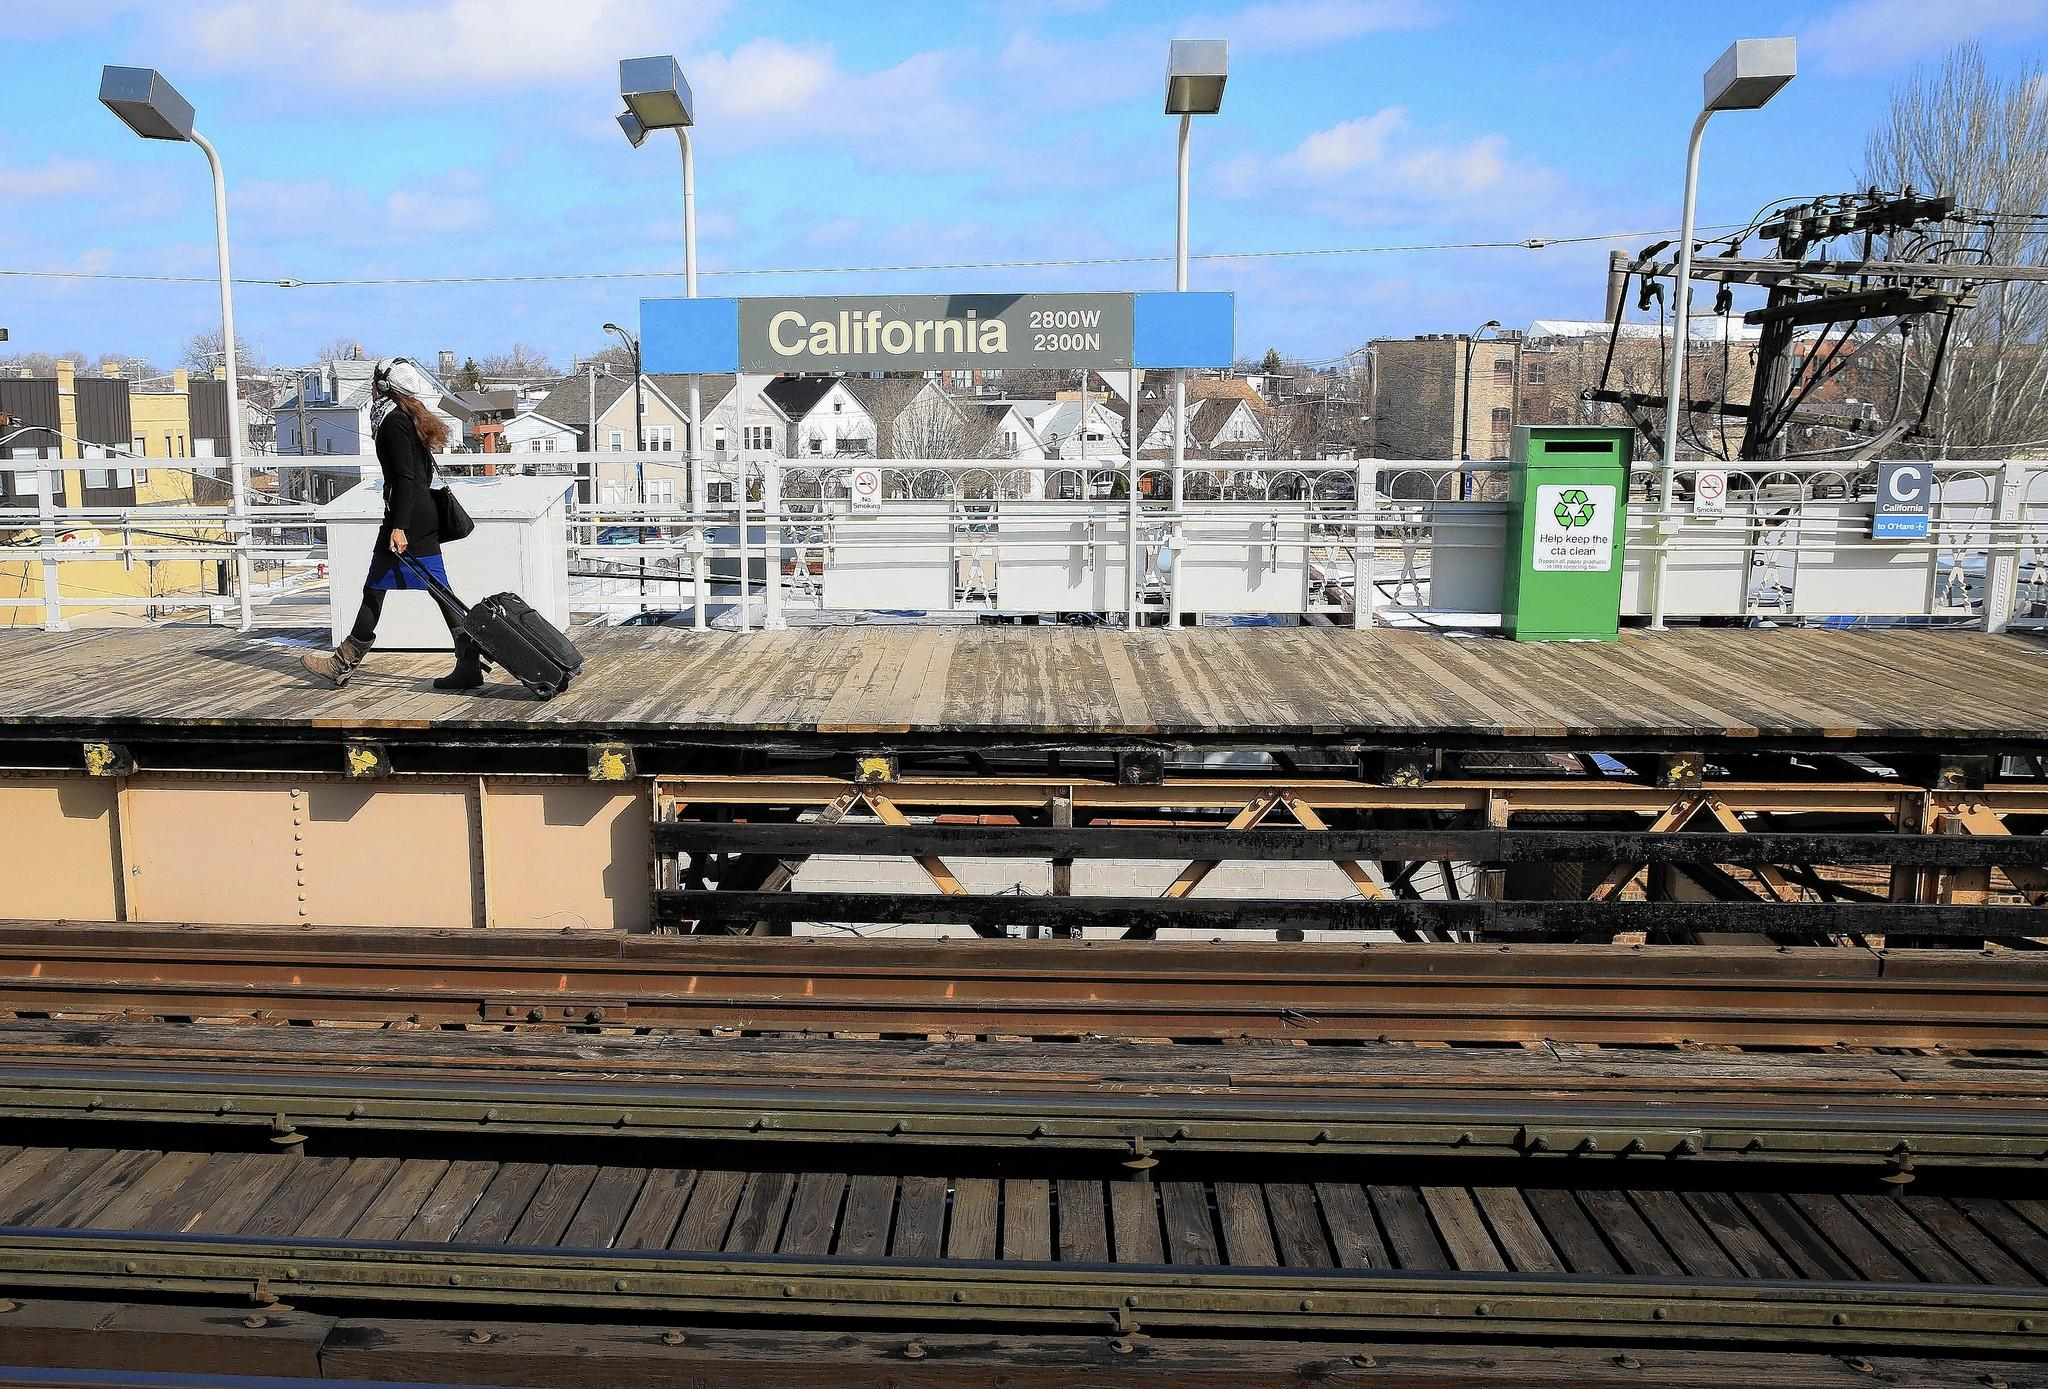 The Blue Line's California station is on the segment to be upgraded over the spring and summer.